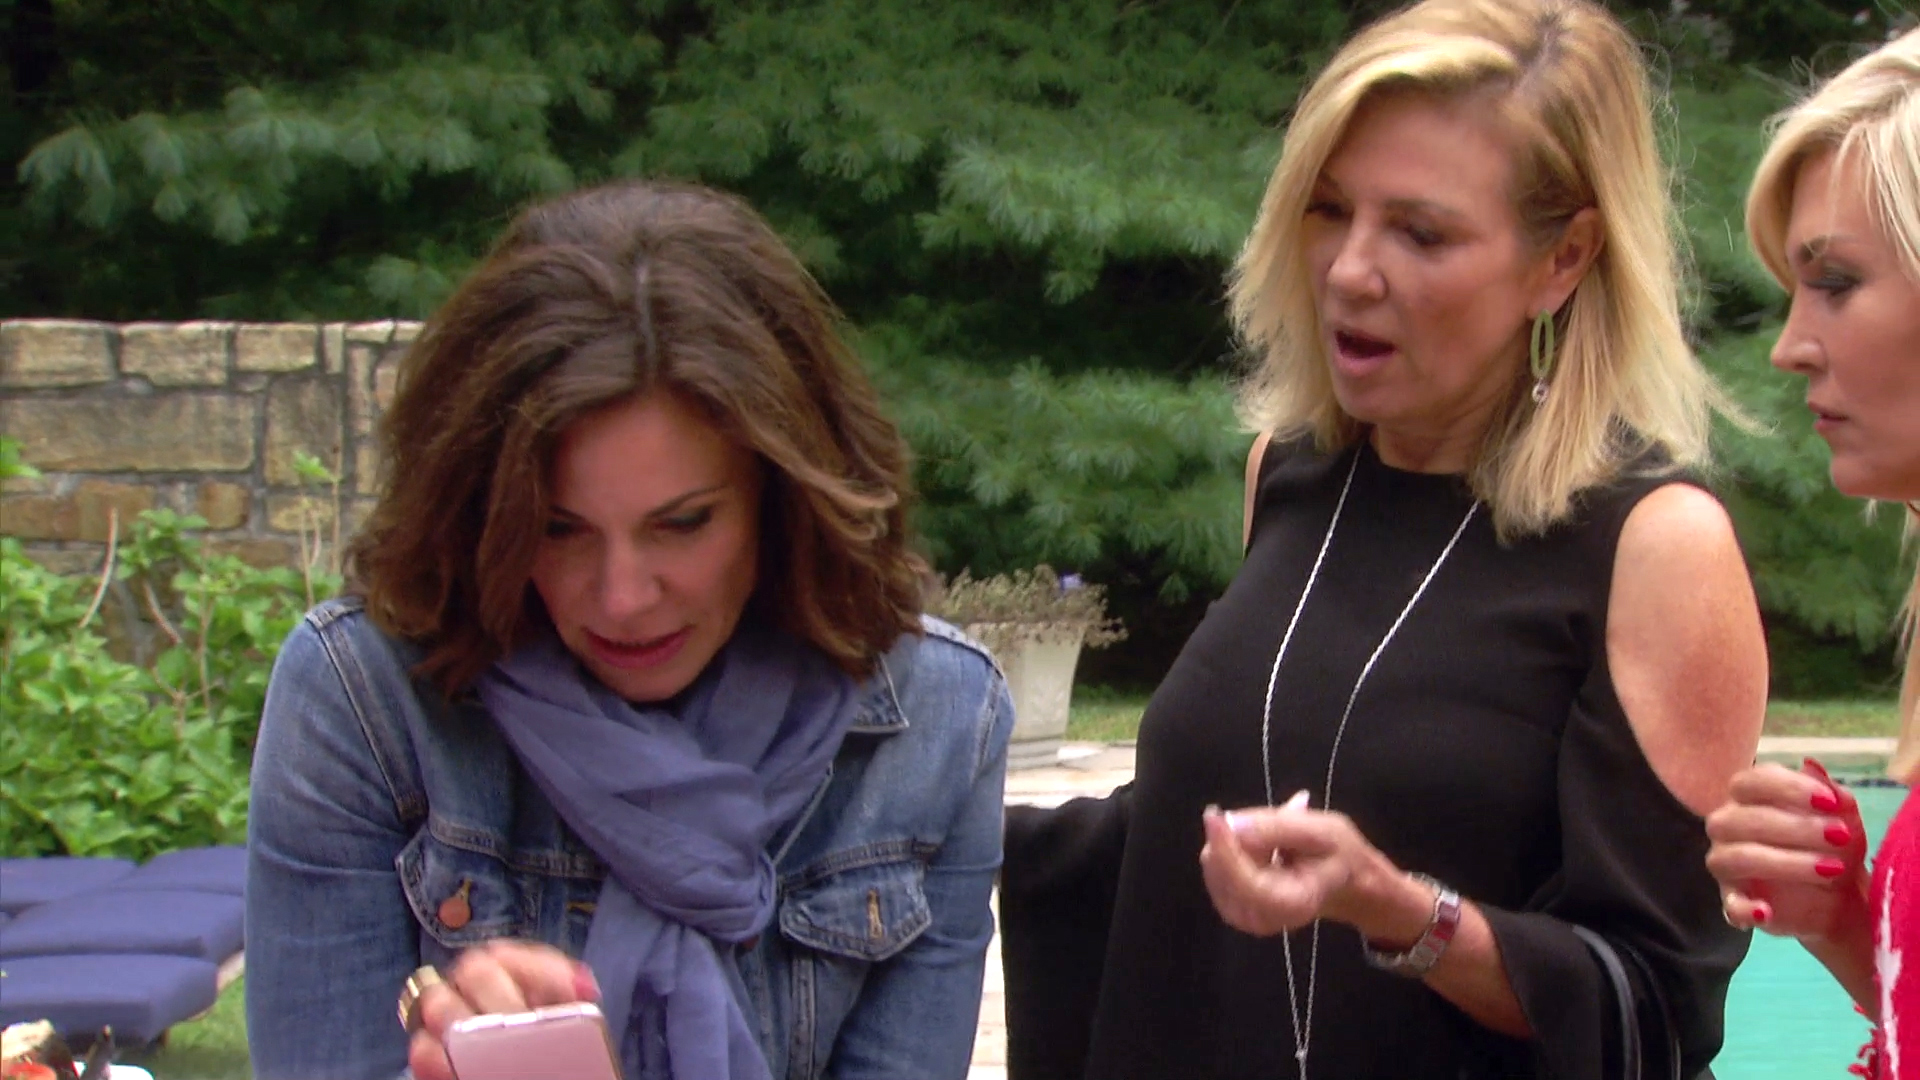 Next on RHONY: Luann de Lesseps Wants Ramona Singer to Cut to the Chase